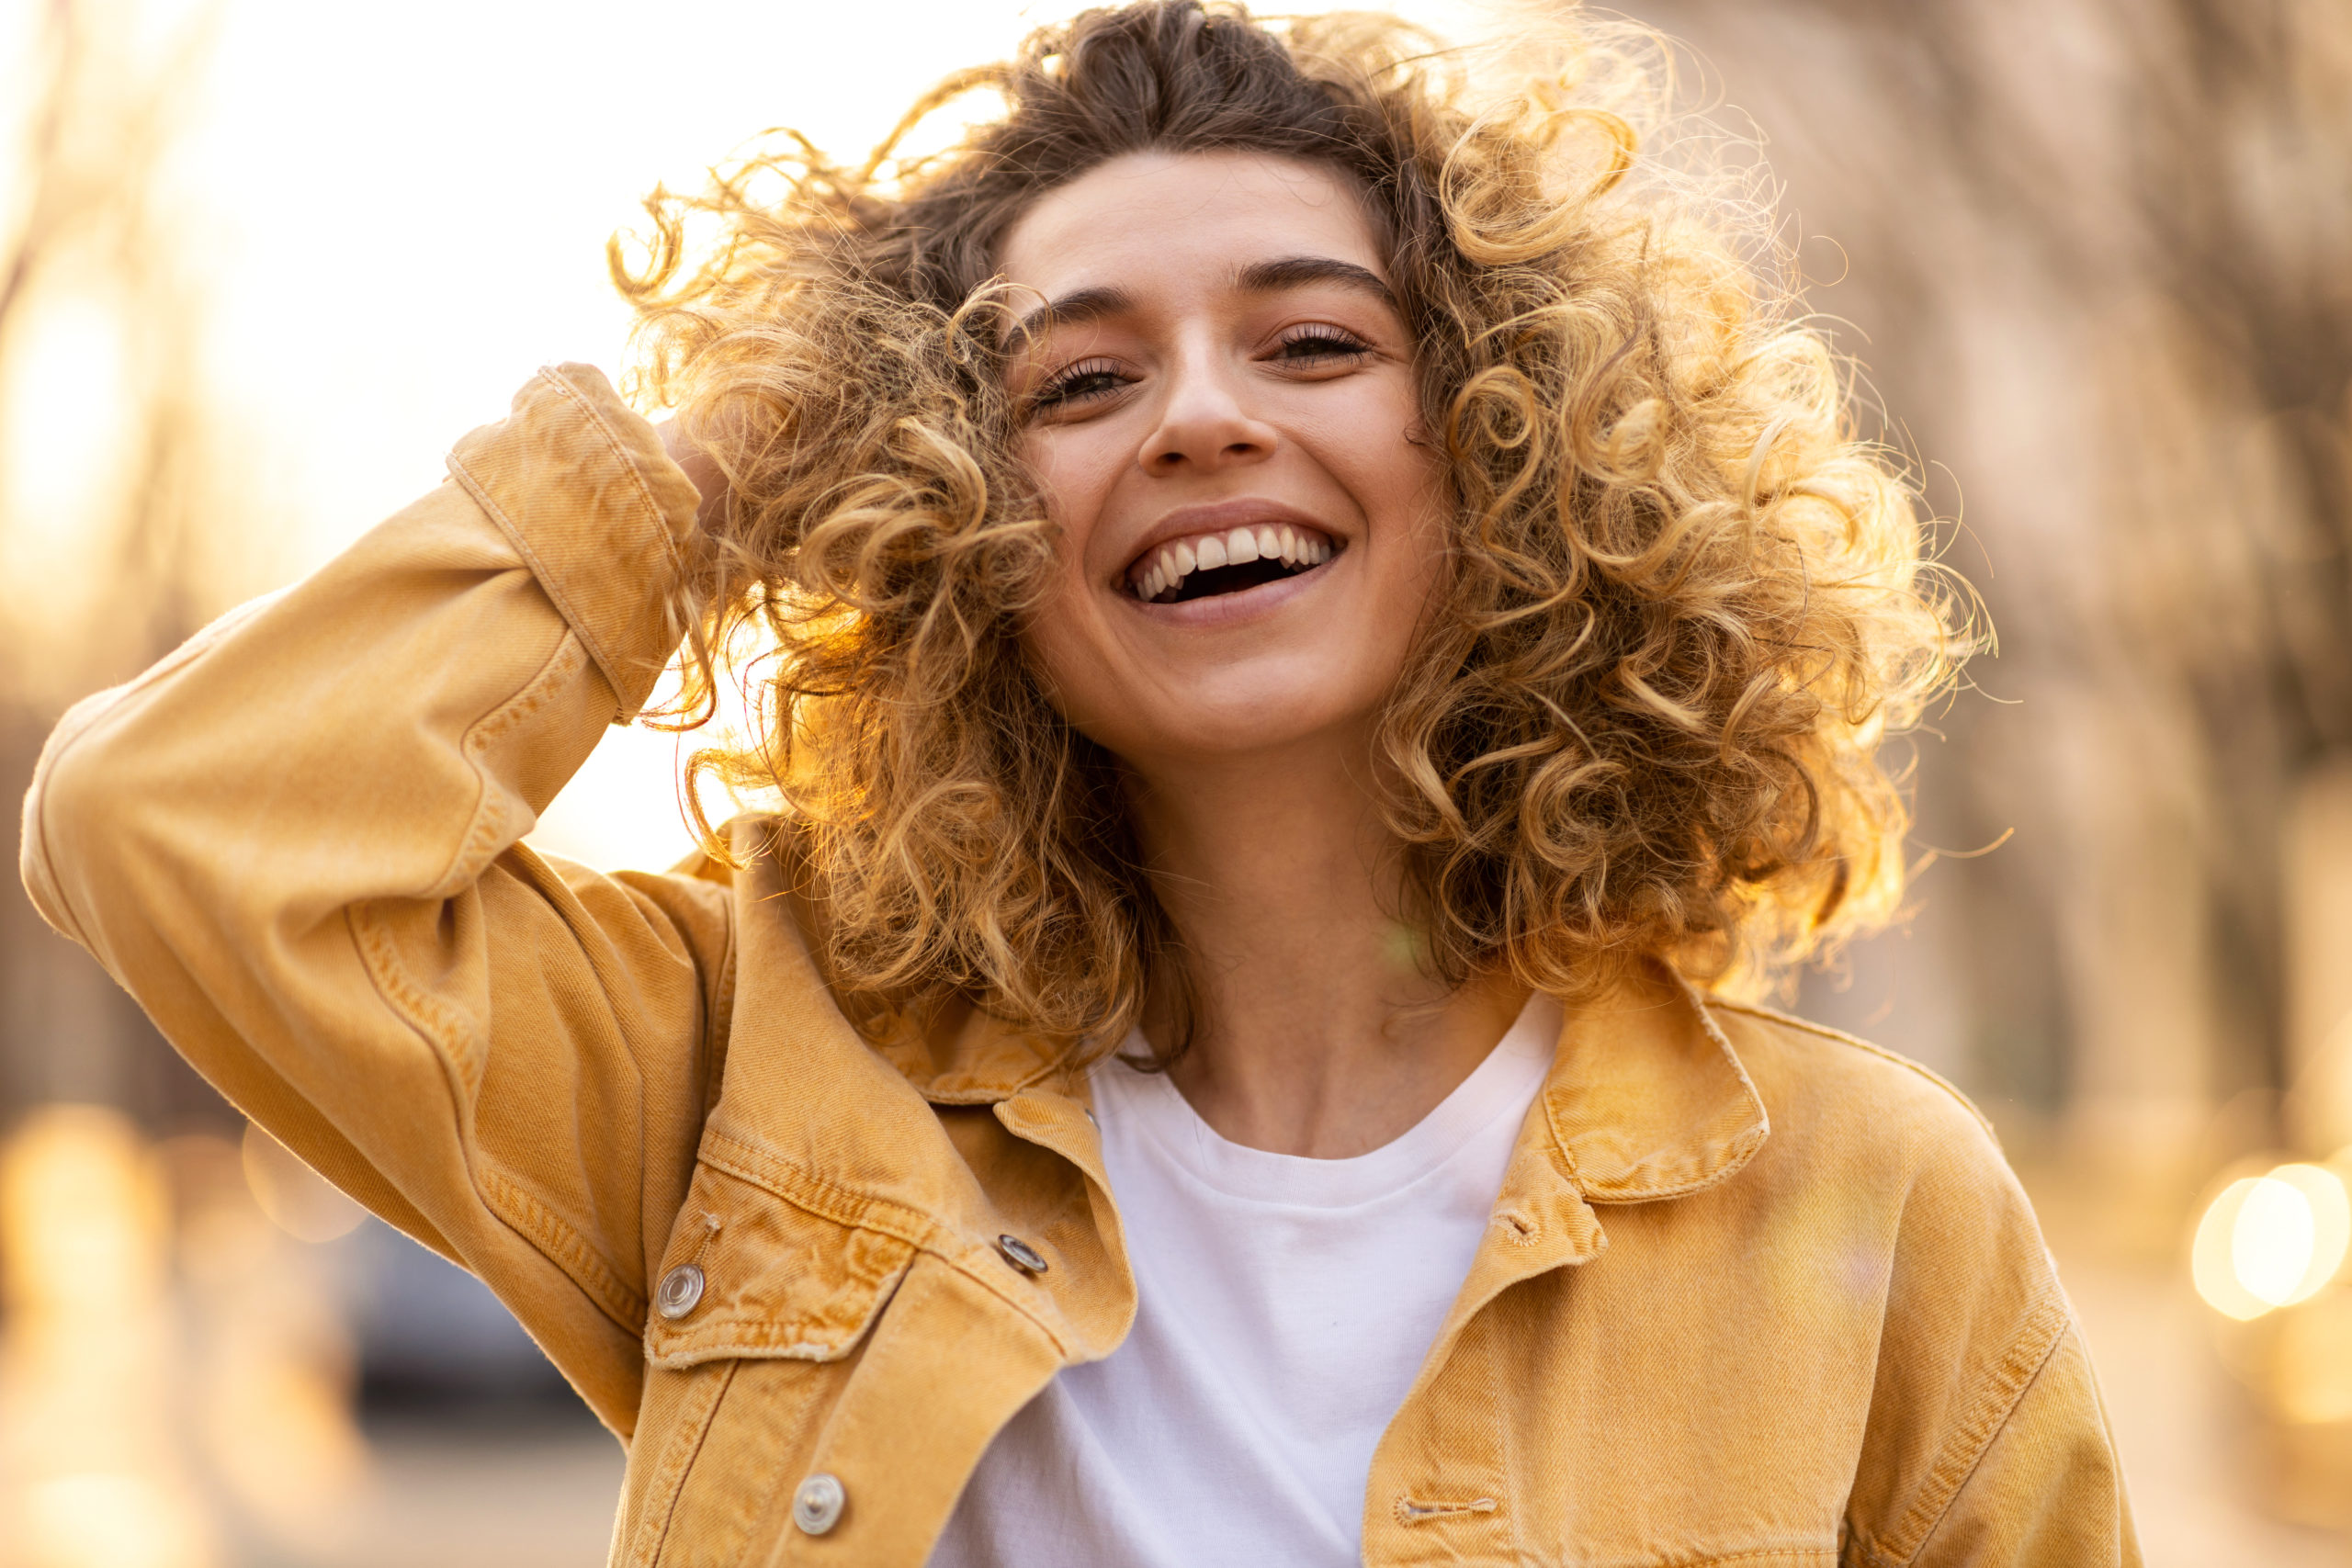 woman 4 Great Tips to Live a More Positive Lifestyle